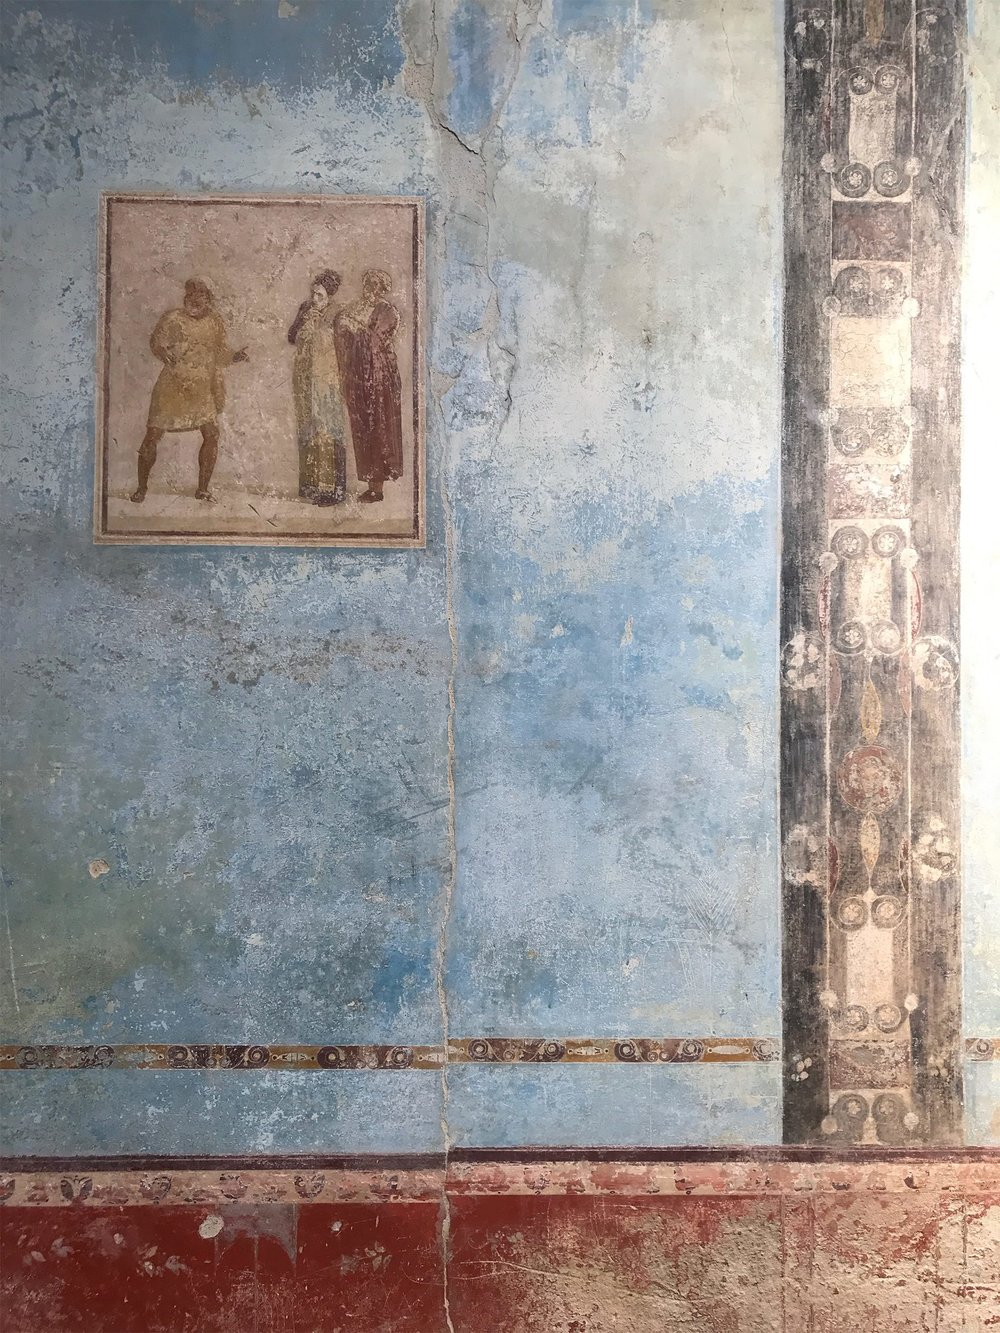 Pompei-wall-art2.jpg